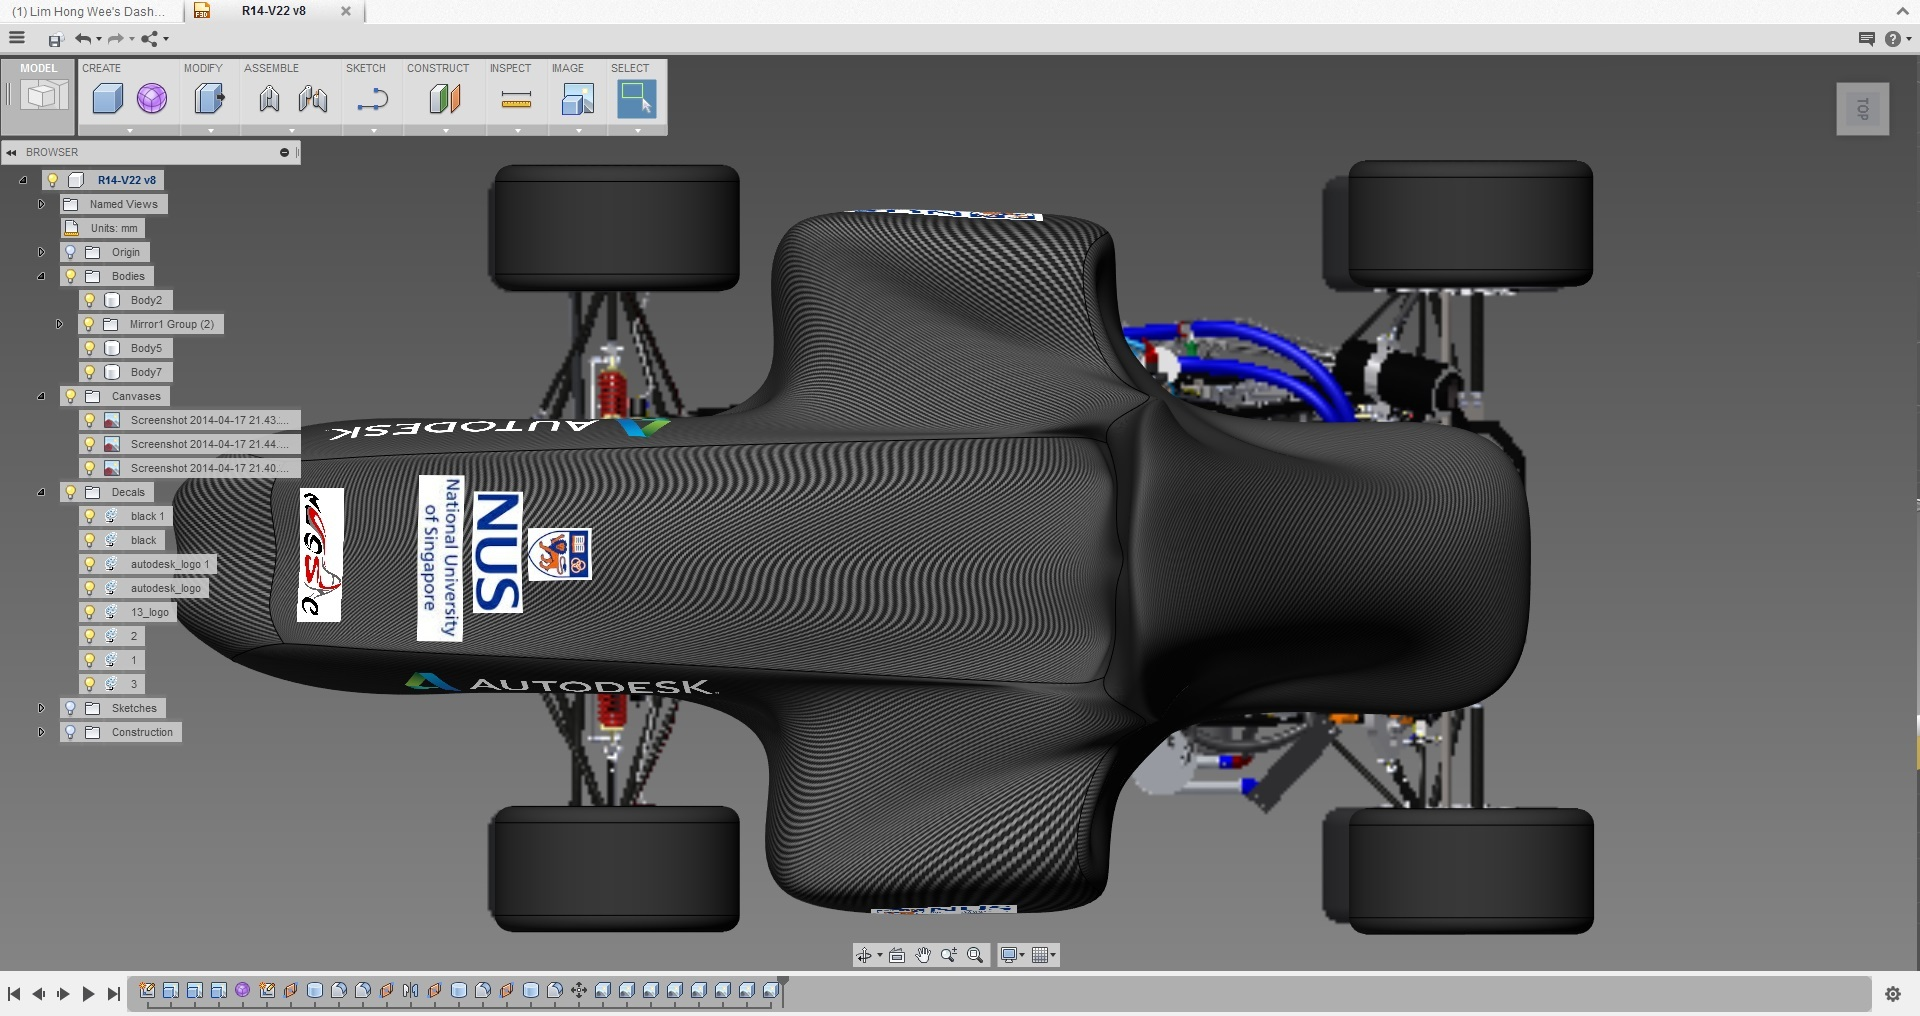 Autodesk Inventor Or Fusion 360